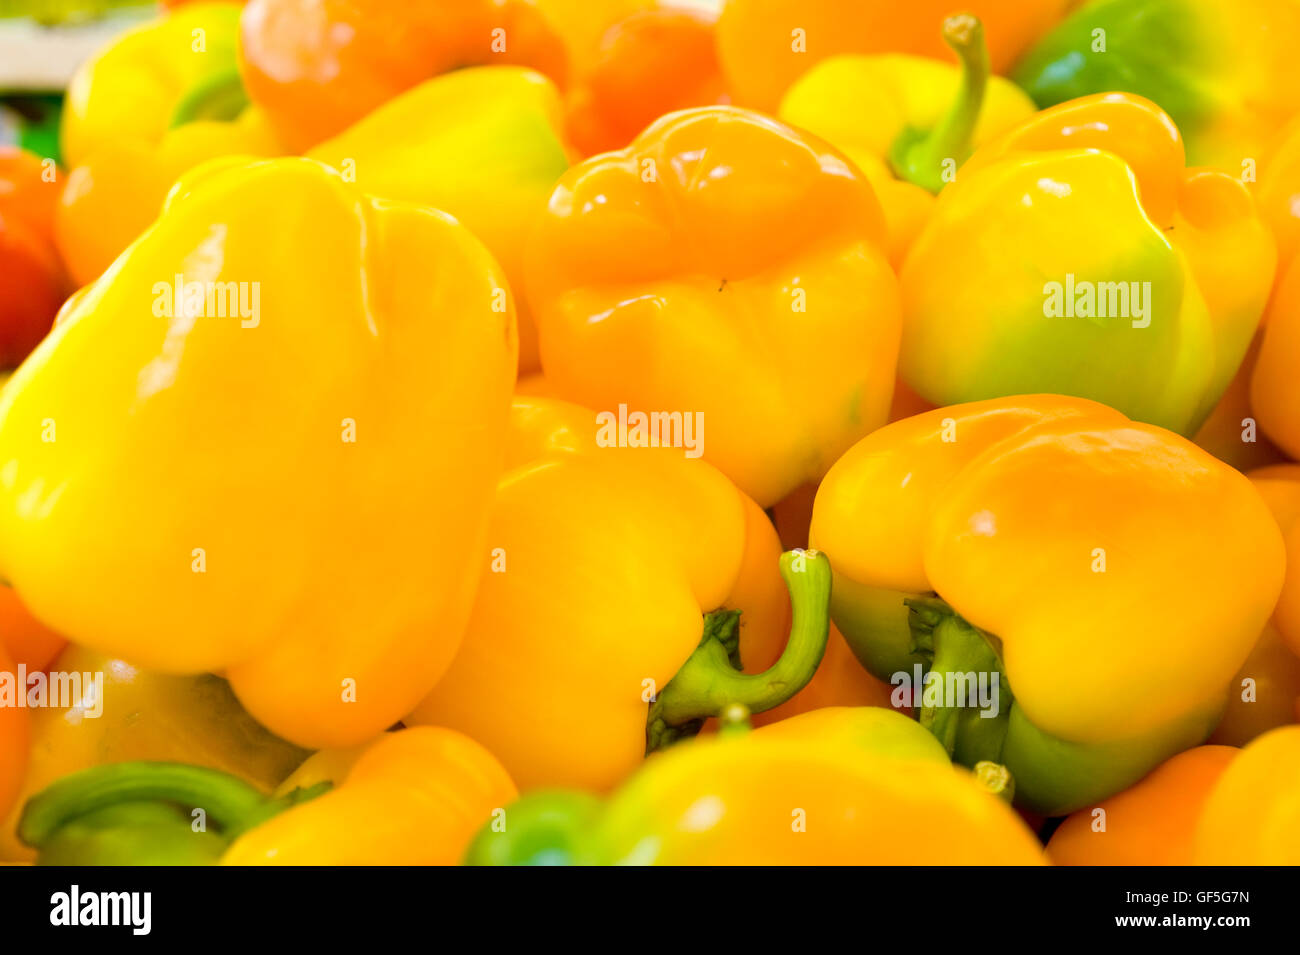 A pile of fresh, ripe yellow Bell peppers (Capsicum annuum) - Stock Image